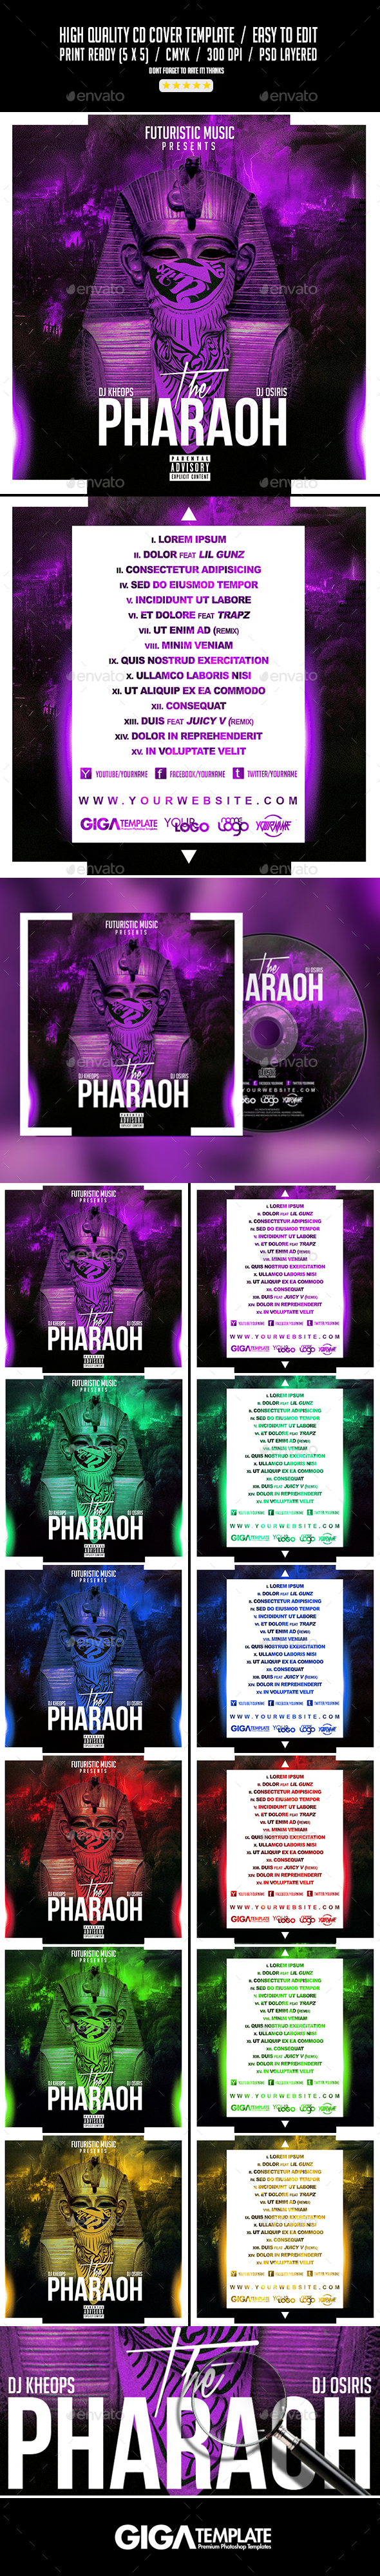 The Pharaoh | Mixtape Tape Album CD Cover Template - CD & DVD Artwork Print Templates